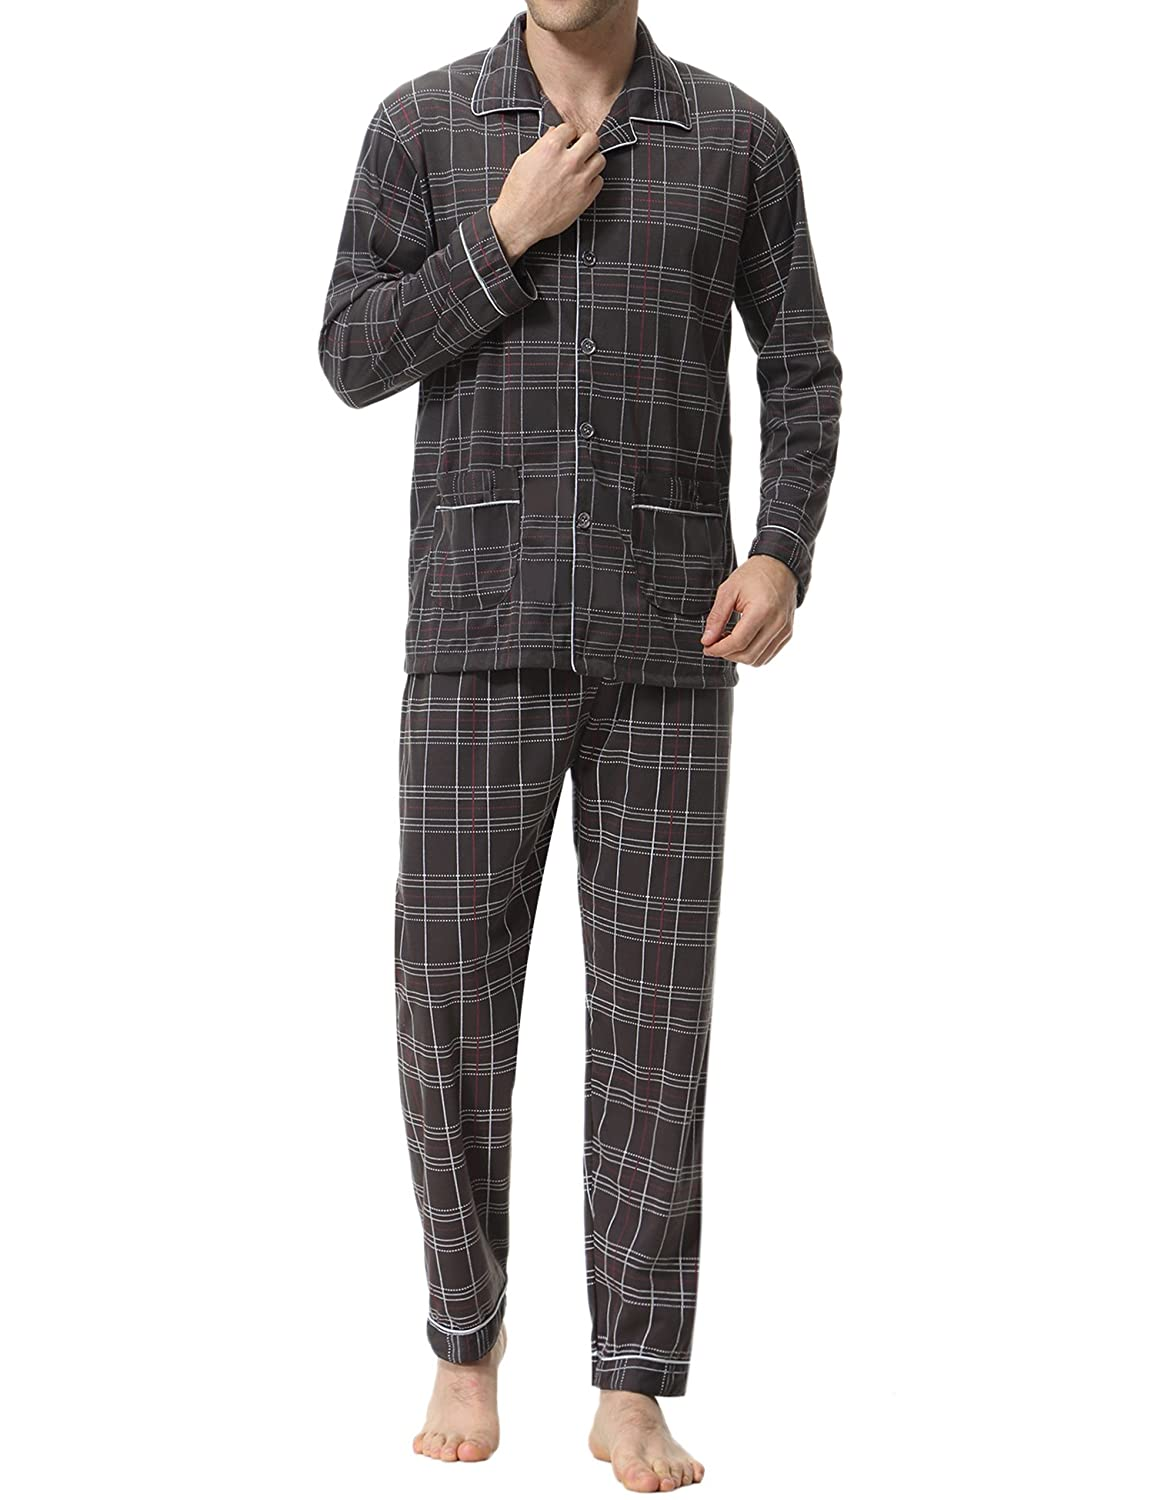 Aibrou Mens Pyjama Set, Long Sleeve Checked Cotton Top & Bottom PJS Nightwear Loungewear